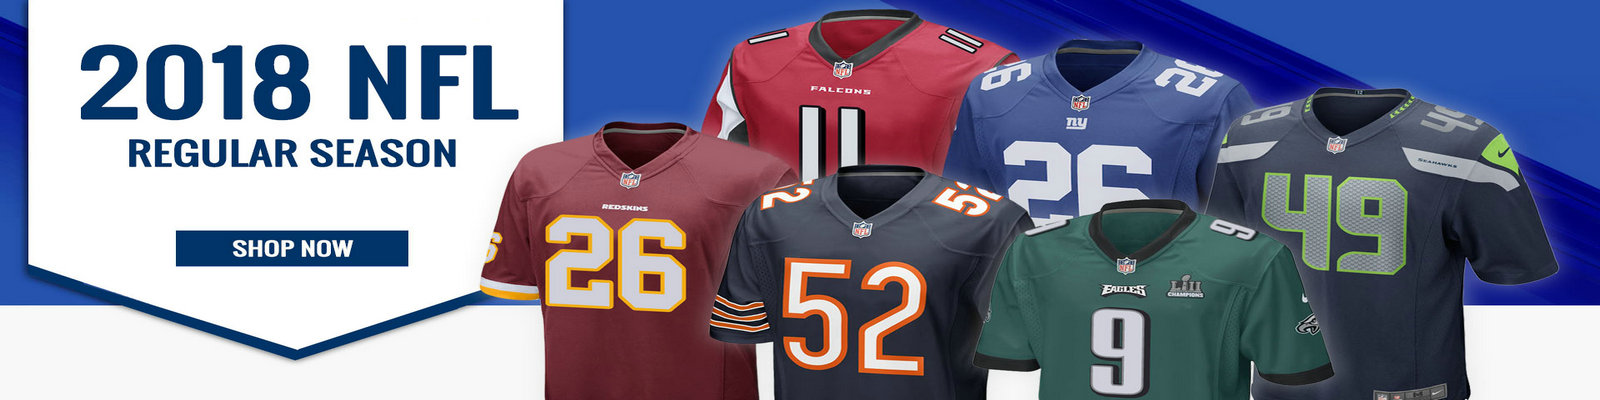 2018 player's uniform